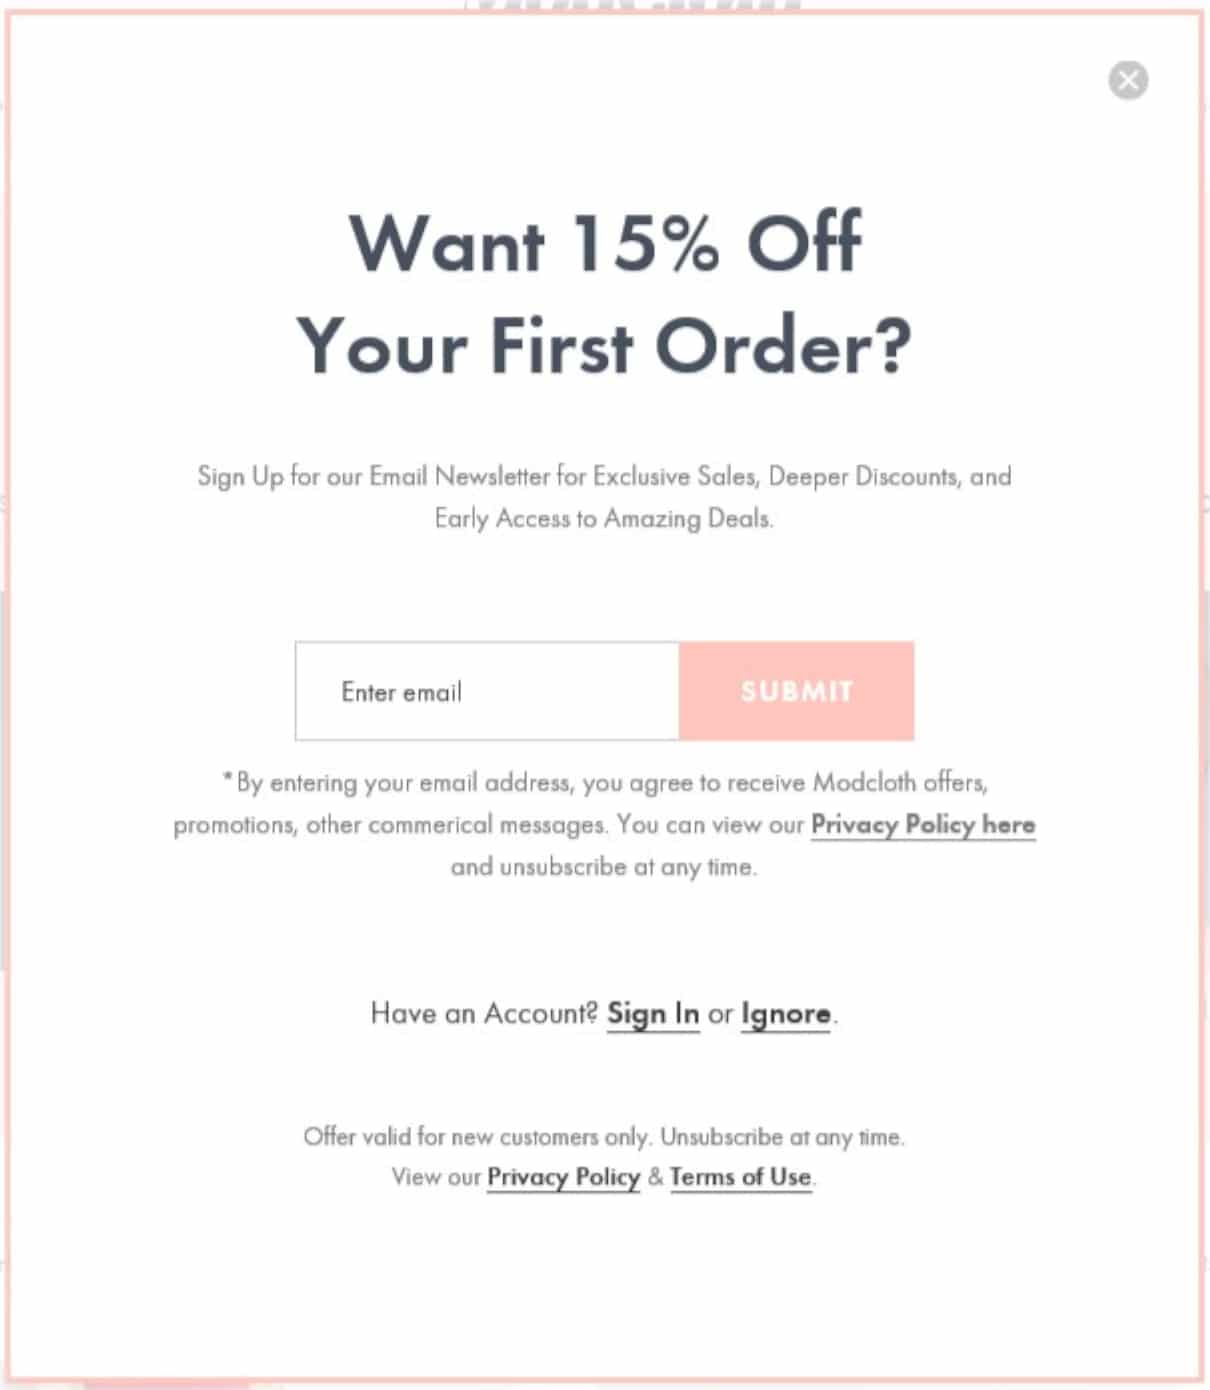 Modcloth uses an exit intent pop-up to get new subscribers to their email list. They offer a discount for someone's first purchase.